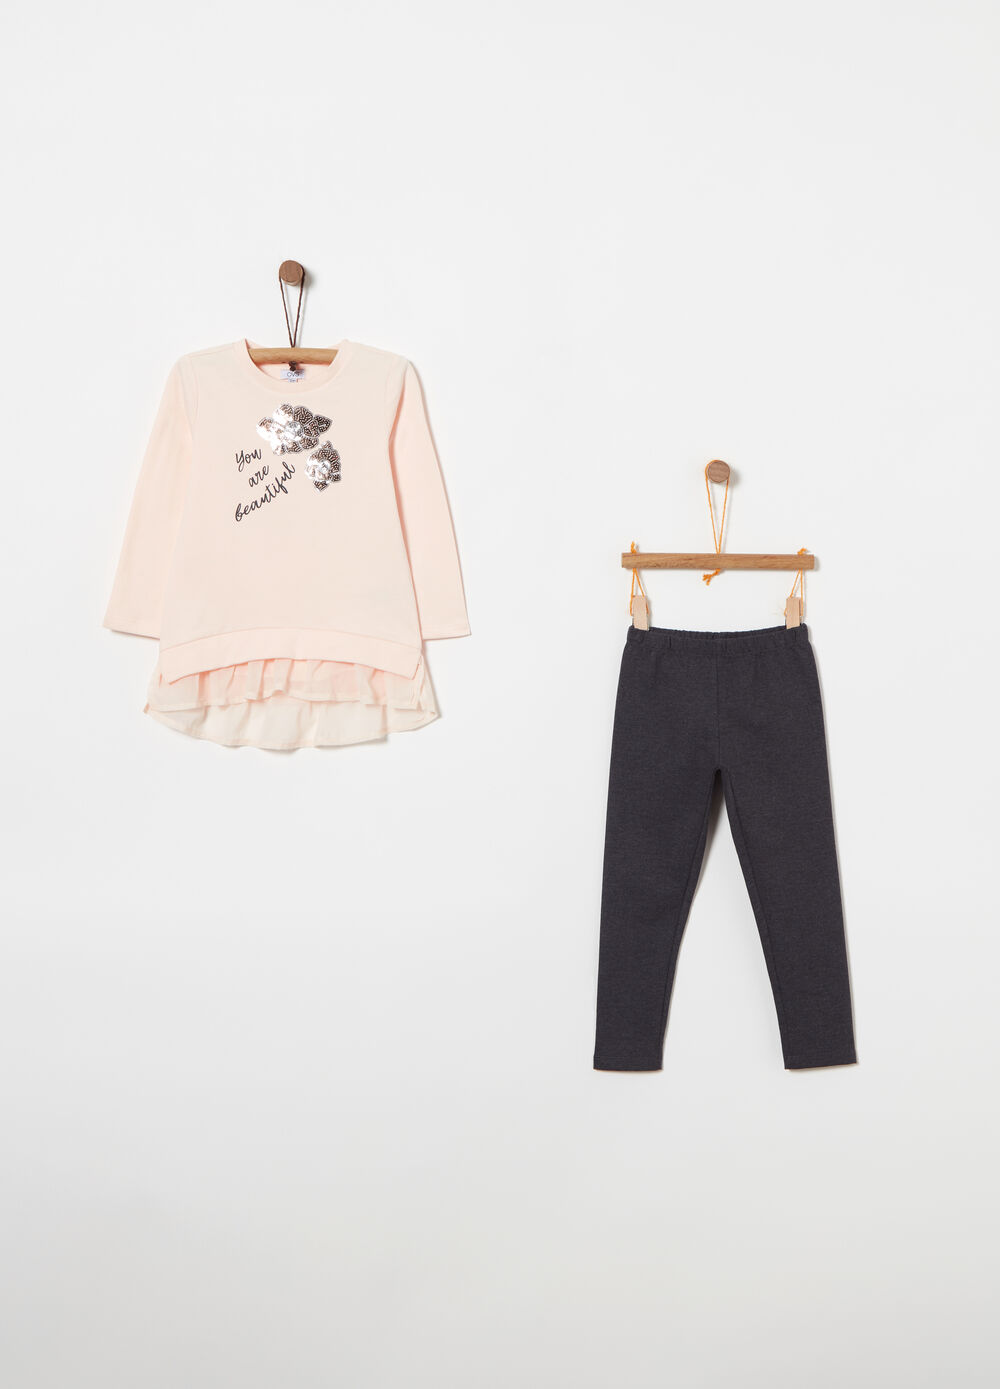 Fleece jogging set with print and sequins